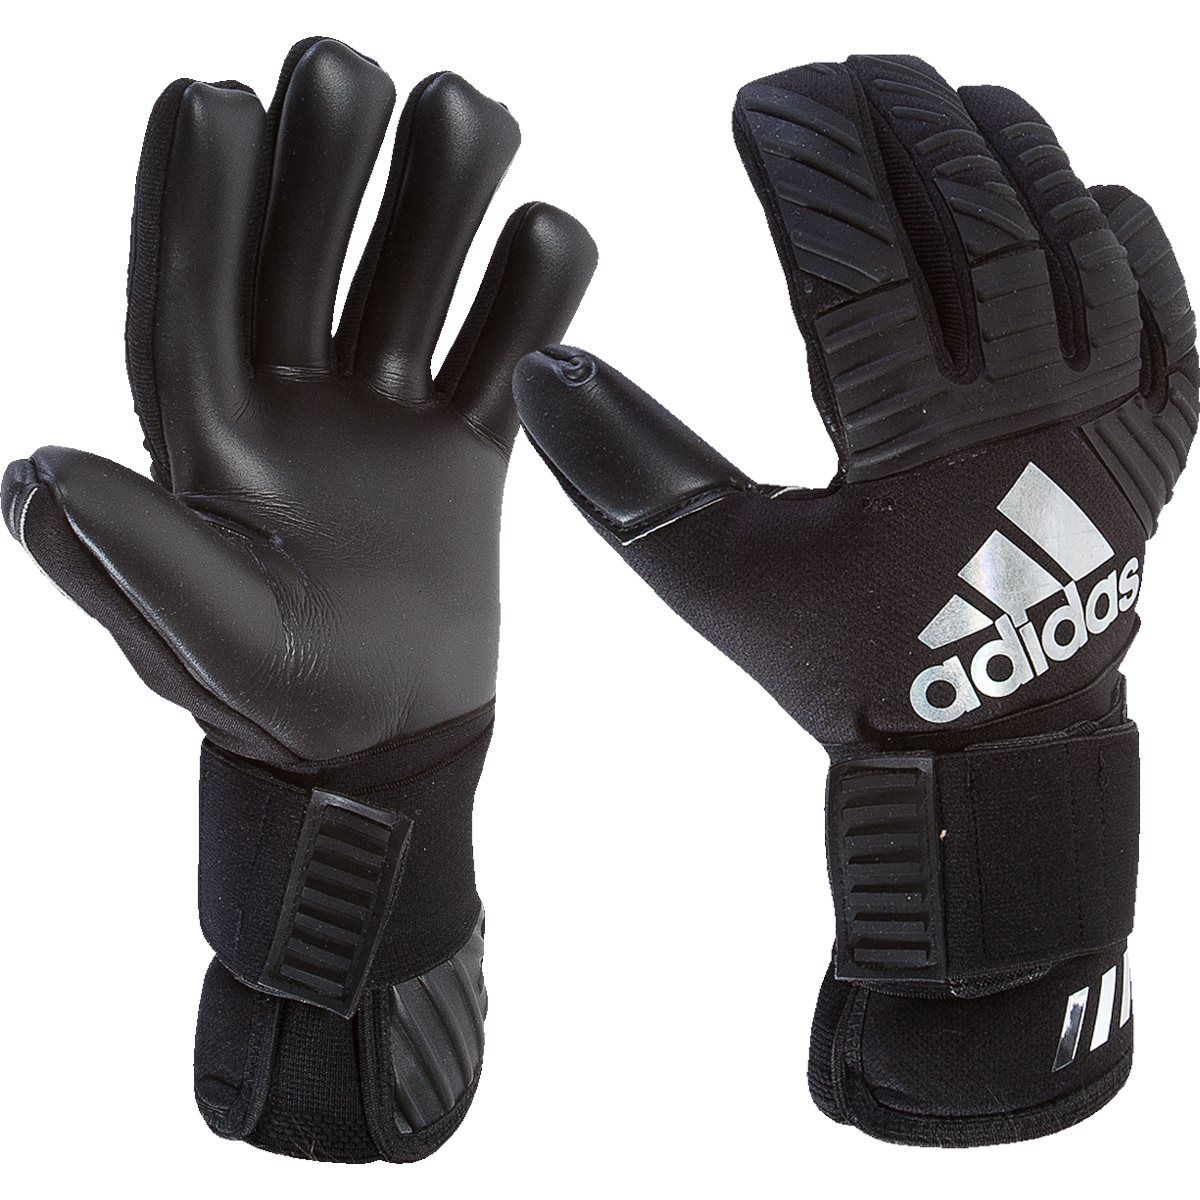 Adidas Ace Limited Edition Goalkeeper Glove Goalkeeper Gloves Goalkeeper Gloves